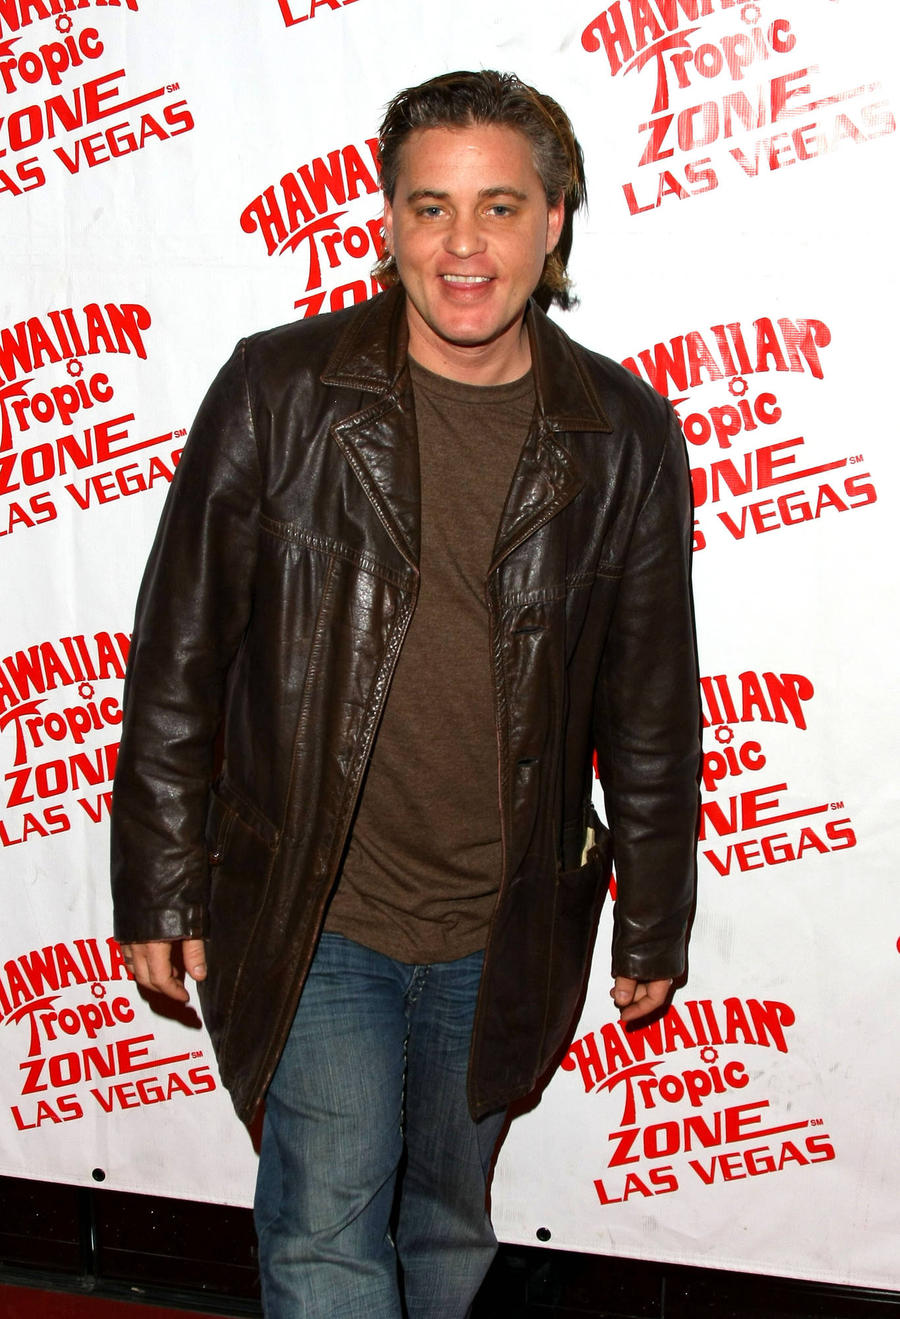 Corey Haim's Mother Threatens Corey Feldman With Legal Action